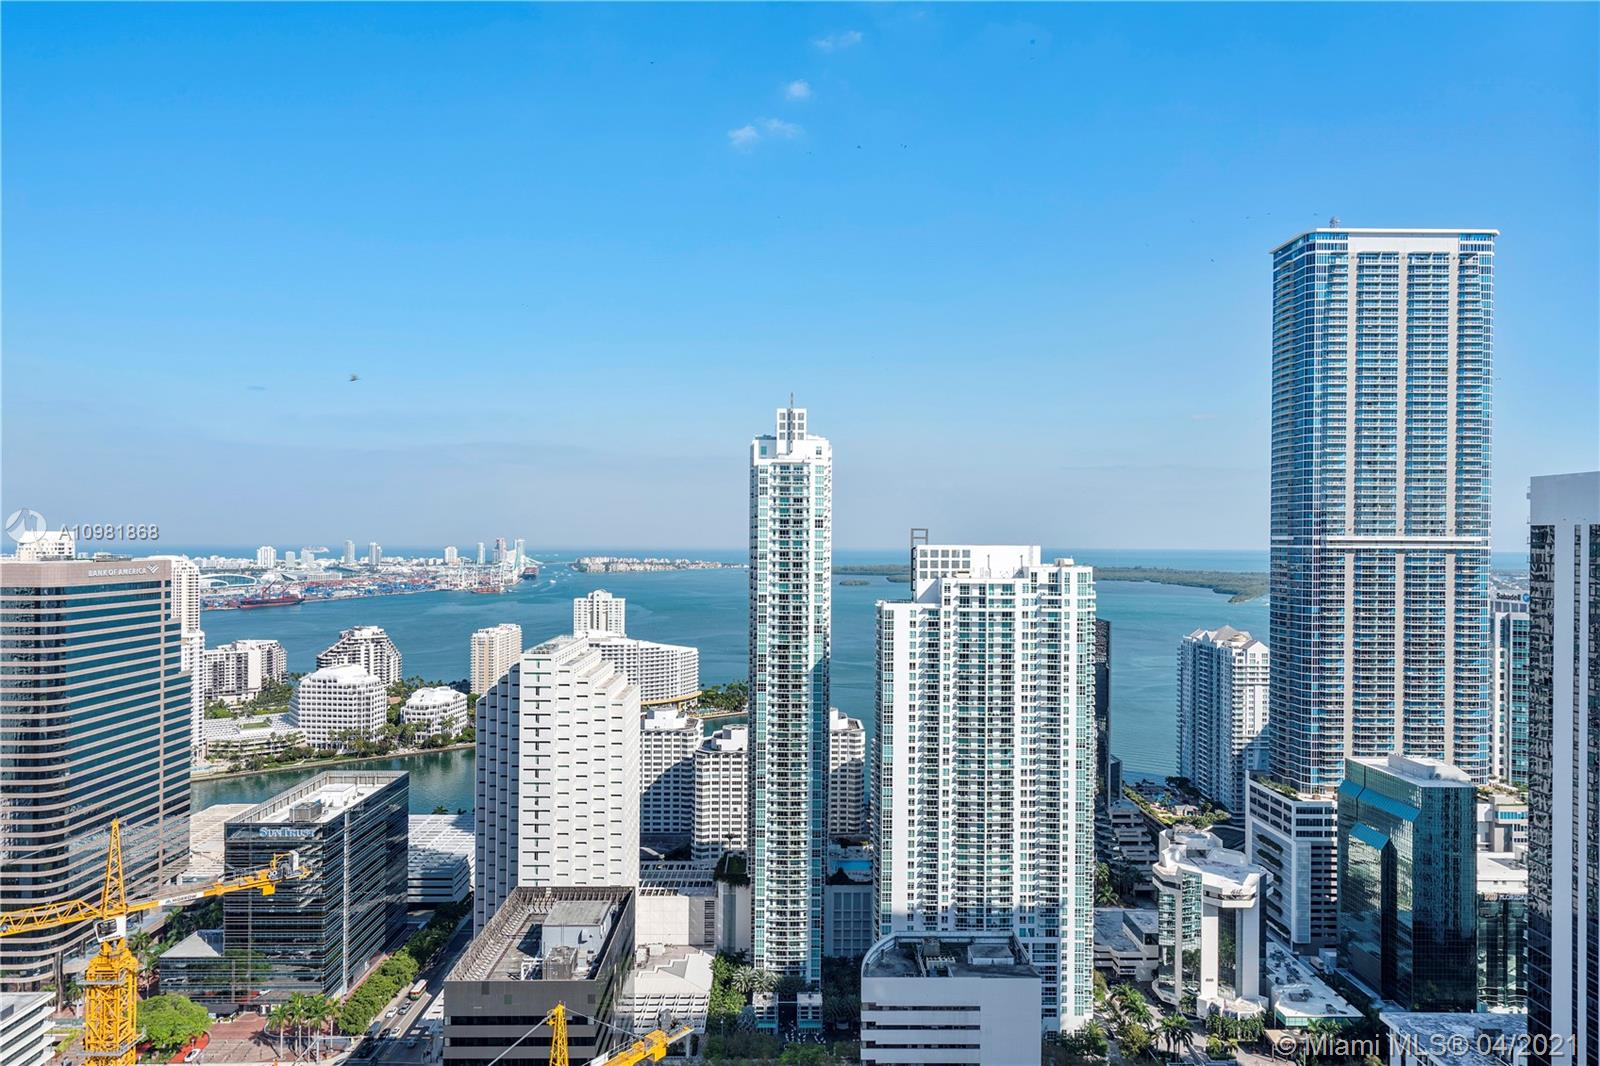 Lower Penthouse Corner unit in trendy Brickell Heights 45th Floor. Million-dollar views of the ocean, the river, the Miami skyline, unlike the SLS Lux tower, Brickell Heights East unit's privacy won't be affected by the current construction of 830 Brickell tower. Spacious 3BD/3.5BA+DEN unit featuring High ceilings, wrap-around balcony, contemporary Italian-style cabinetry, floor-to-ceiling glass, premium BOSCH & SUB-0 appliances, porcelain floors, glass-enclosed showers, 1 assigned parking space with a lift for a 2nd car and more Excellent location with onsite Equinox Gym, SoulCycle in Brickell's luxurious shopping & fine dining right outside. Resort-style amenities include residents-only rooftop pool & lounge w/panoramic views, spa, and much more. Currently leased until mid November 2021.